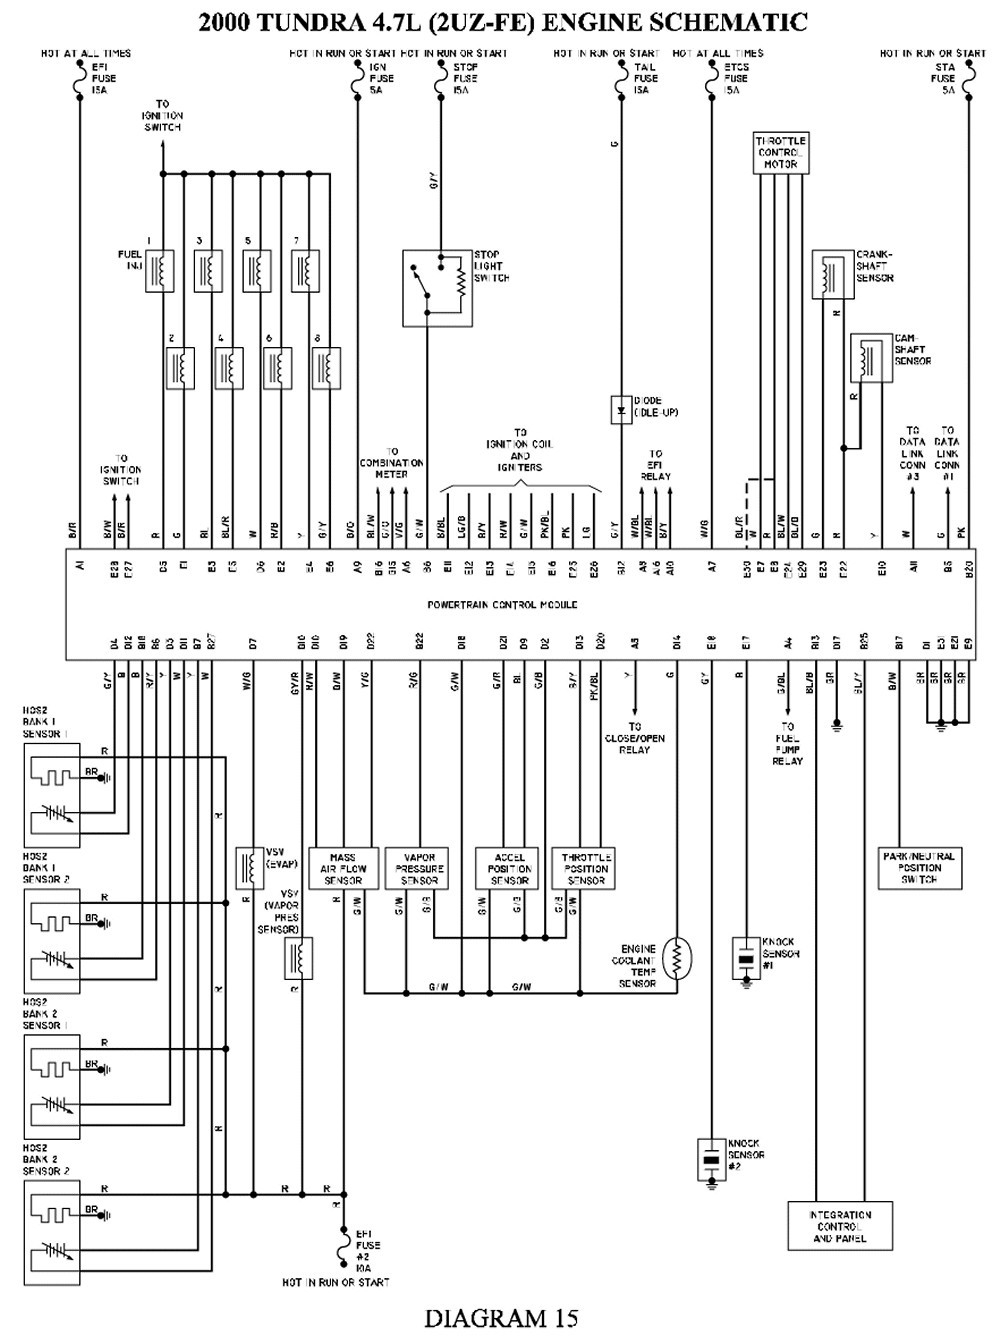 2007 tundra wiring diagrams